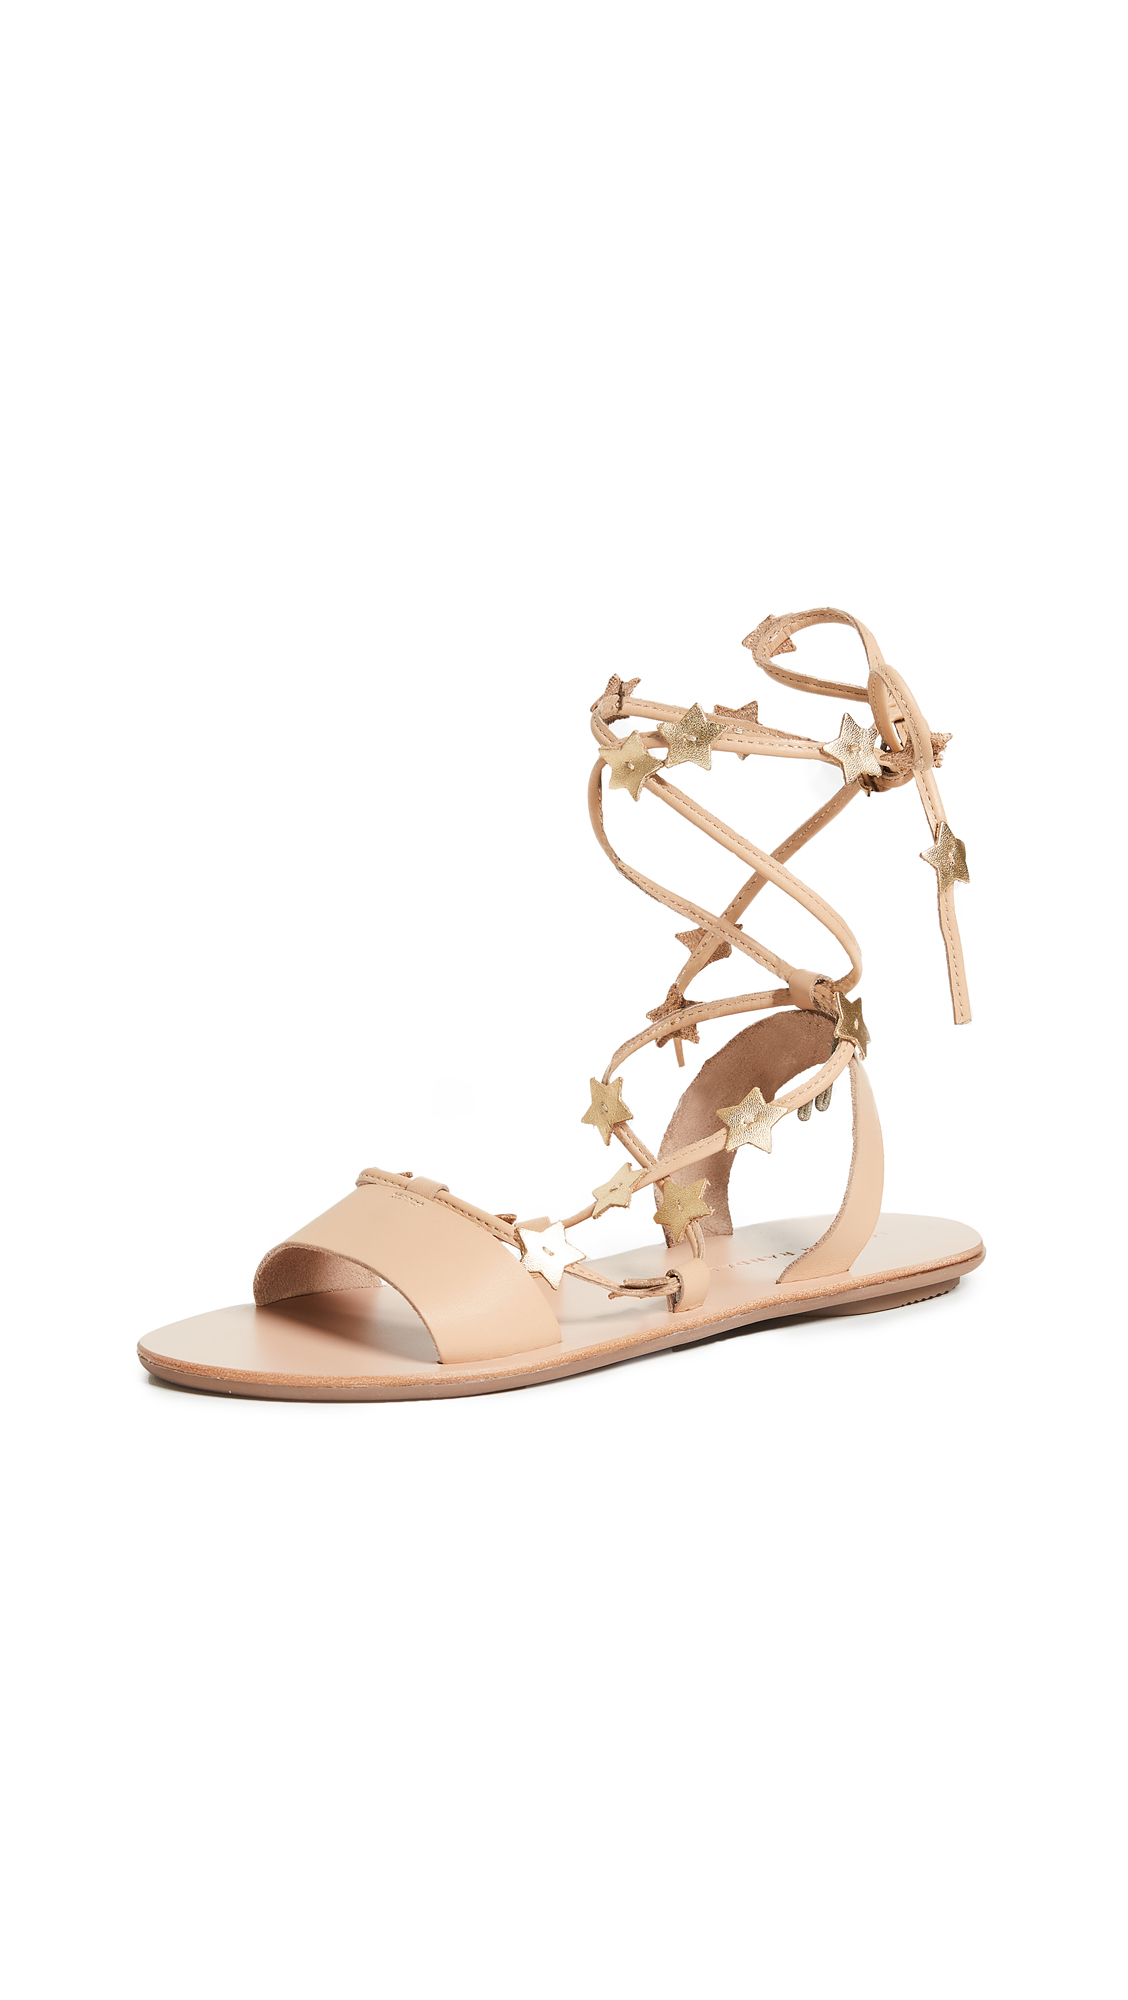 Loeffler Randall Starla Sandals - Wheat/Gold